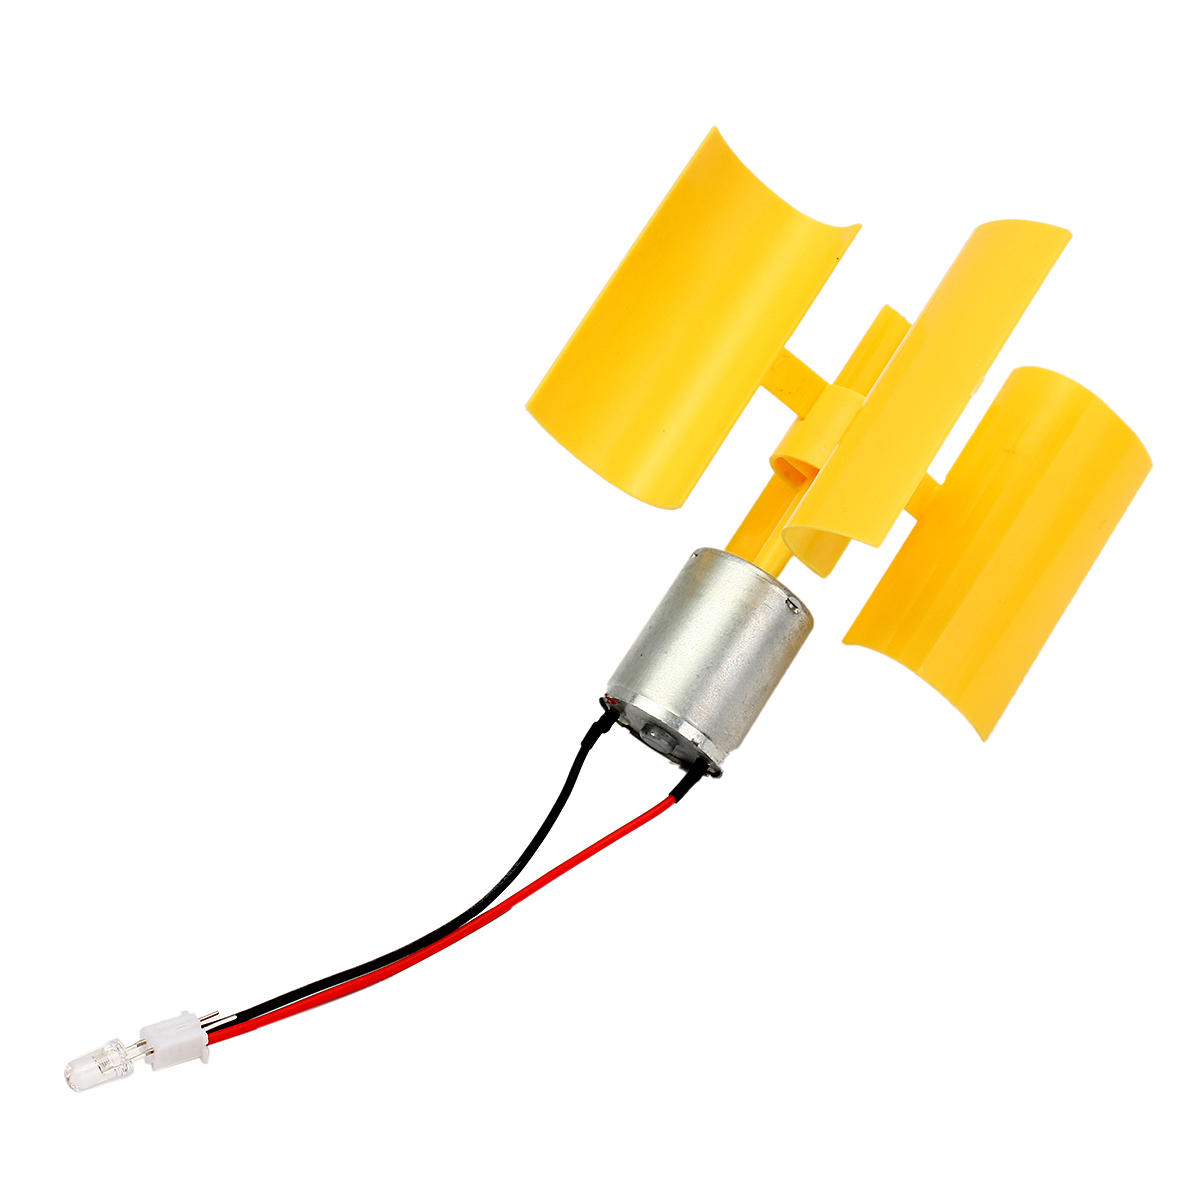 dc micro motor kleine led lichter vertikale achsen wind generator windturbinen bl tt us. Black Bedroom Furniture Sets. Home Design Ideas